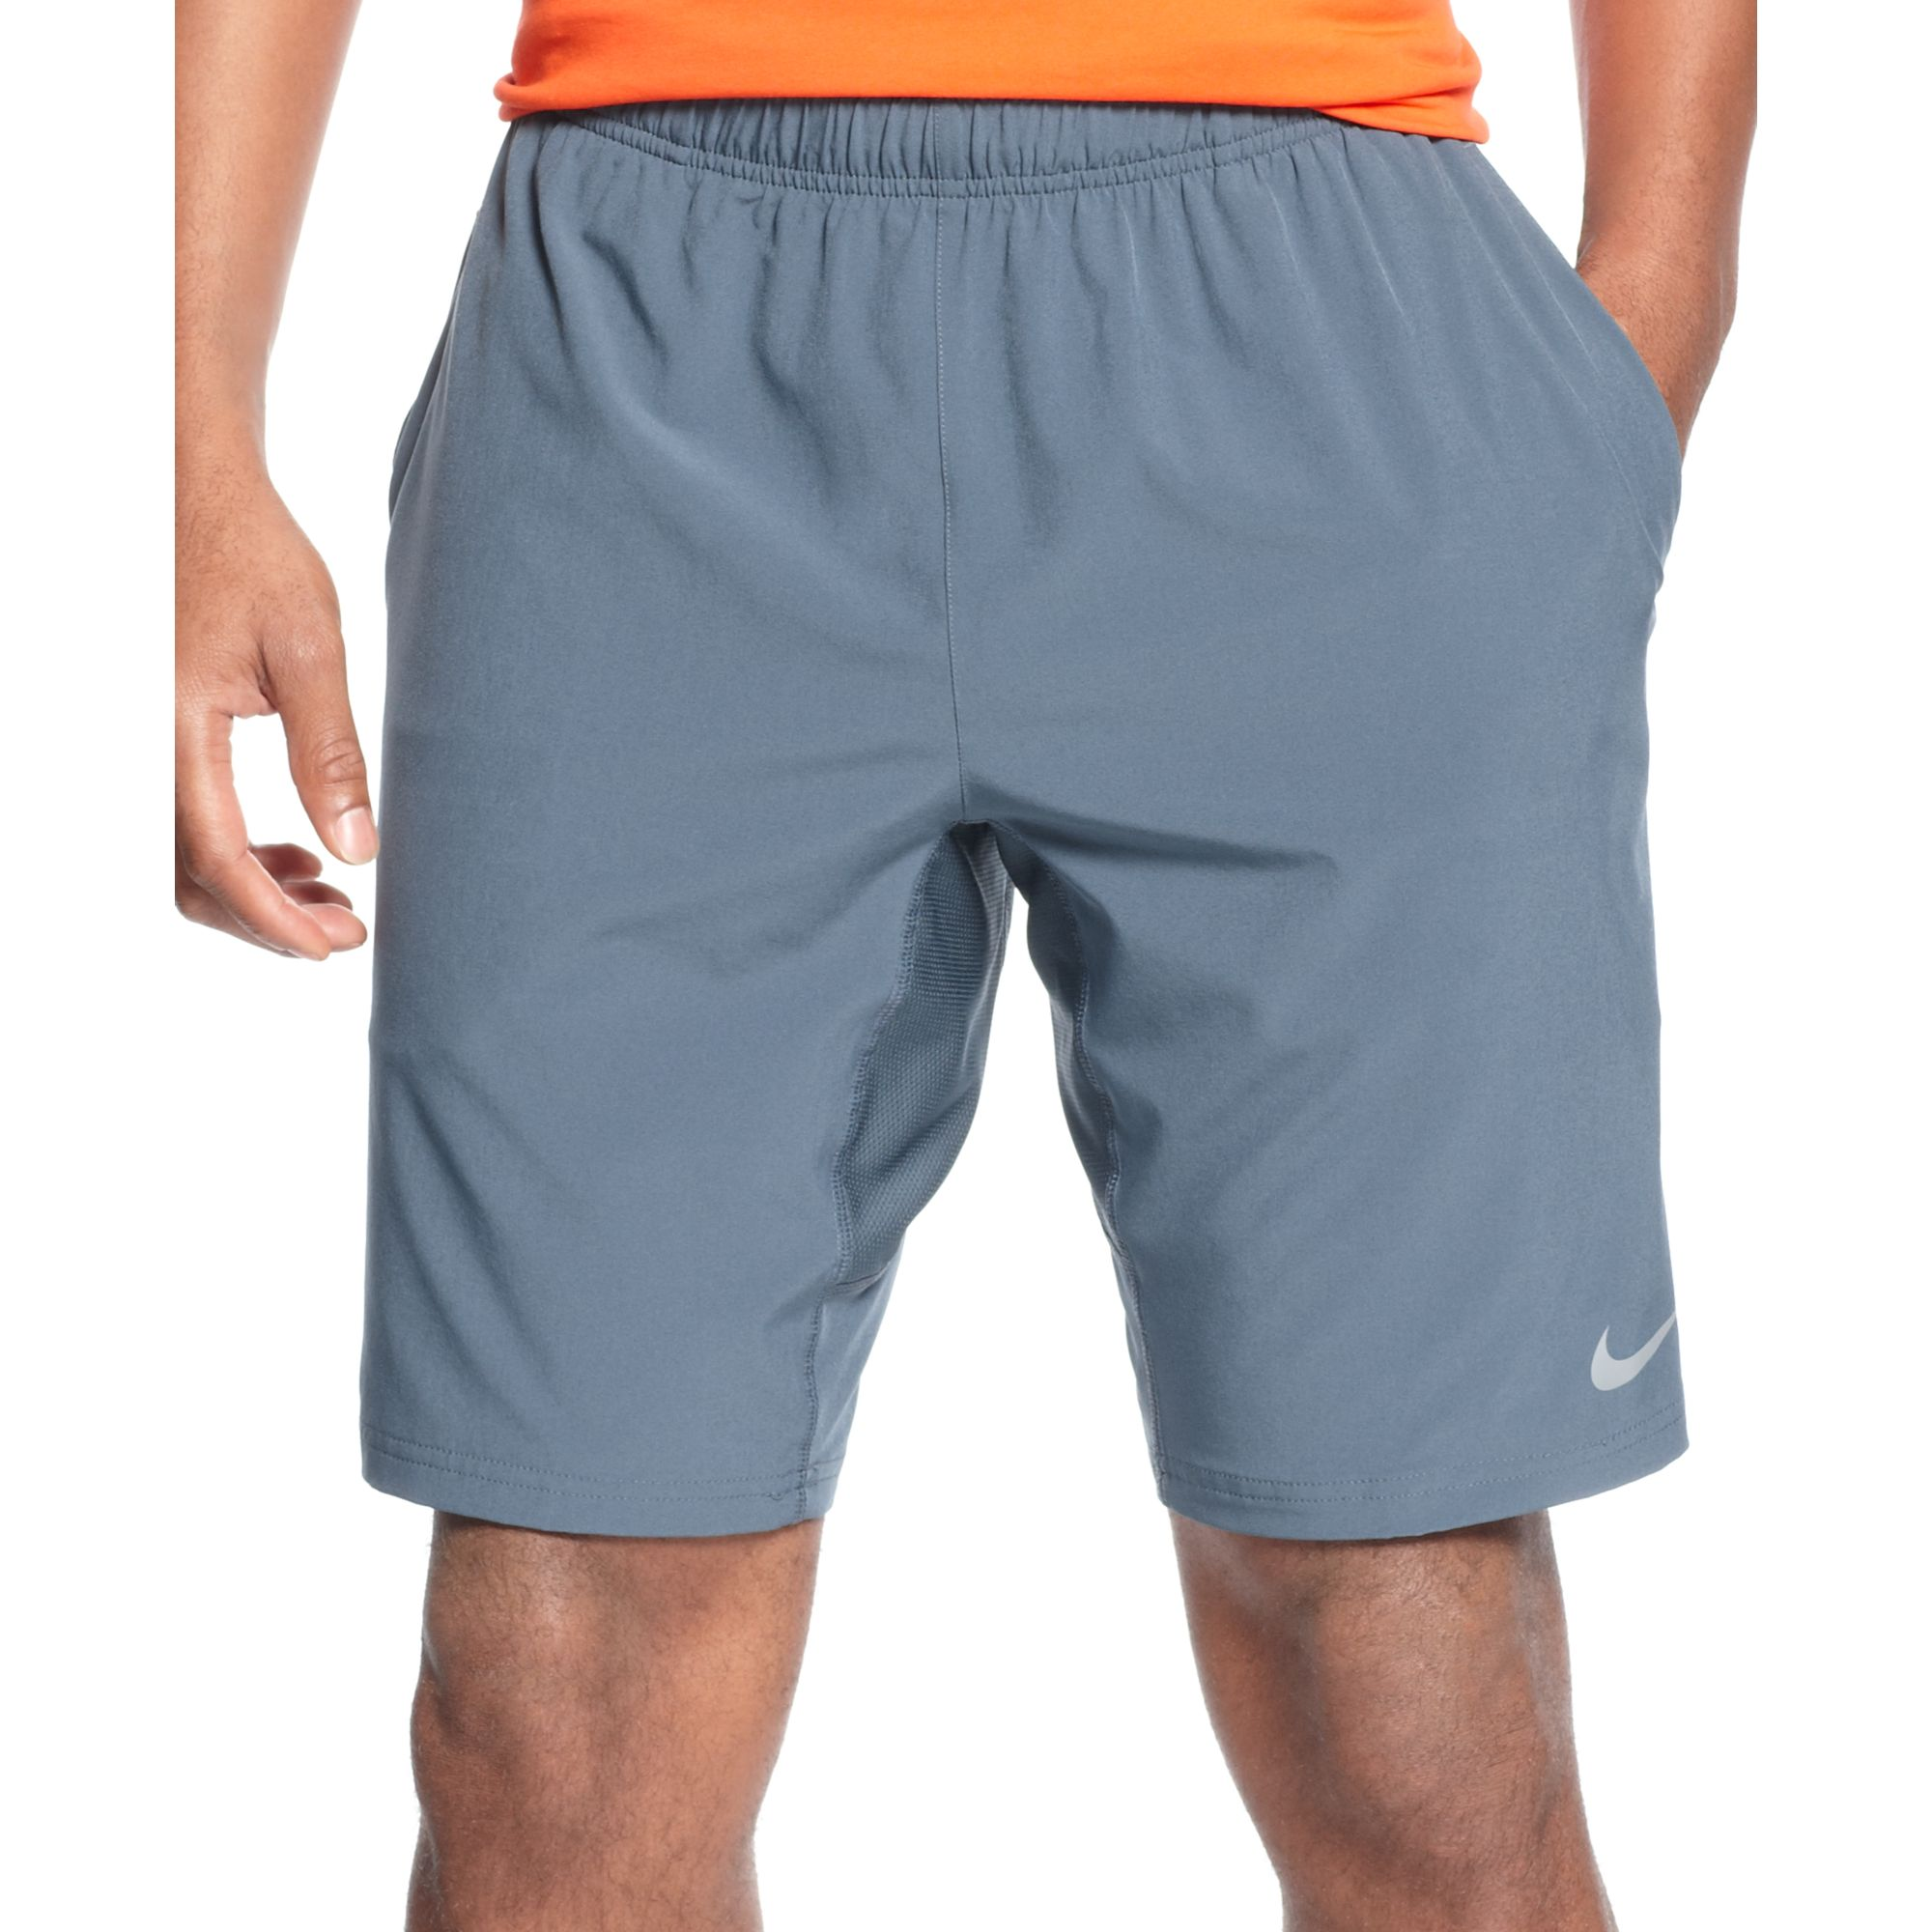 f3441d0bfb4c Lyst - Nike Gladiator Drifit Tennis Shorts in Blue for Men